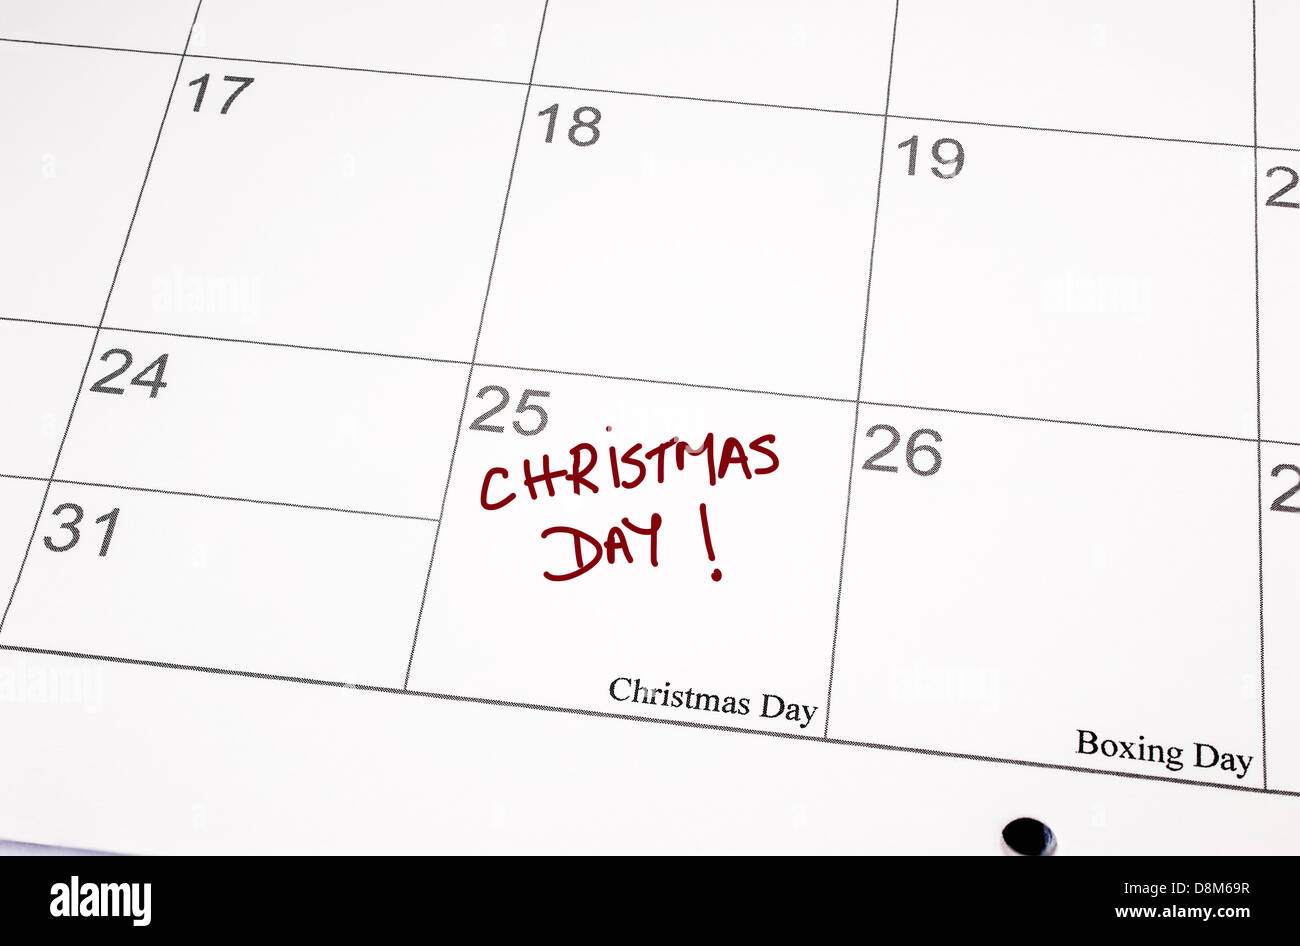 Calendar page showing Christmas Day written in the date space ...